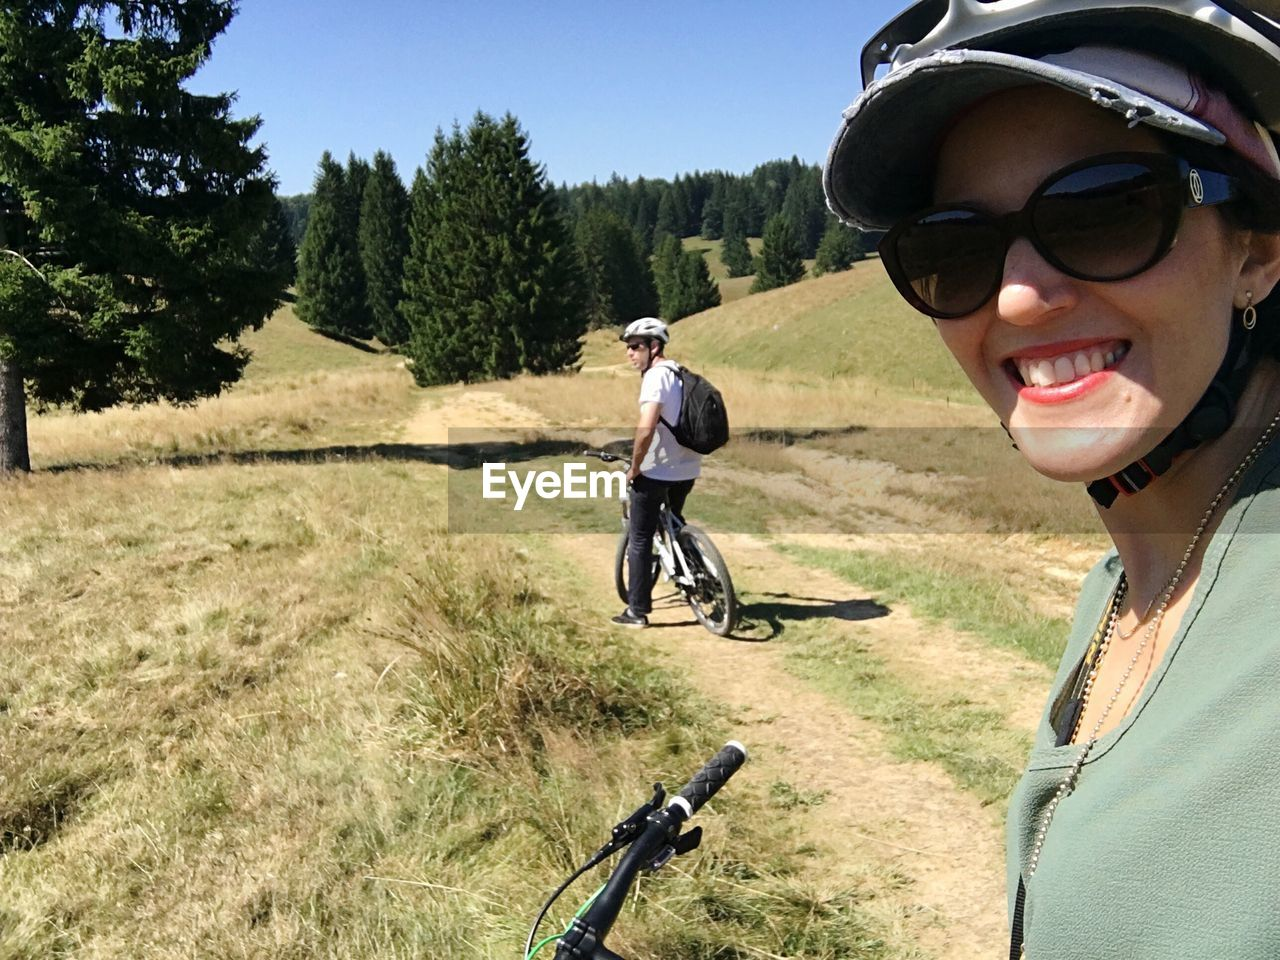 Happy woman with bicycle on field during sunny day with friend in background